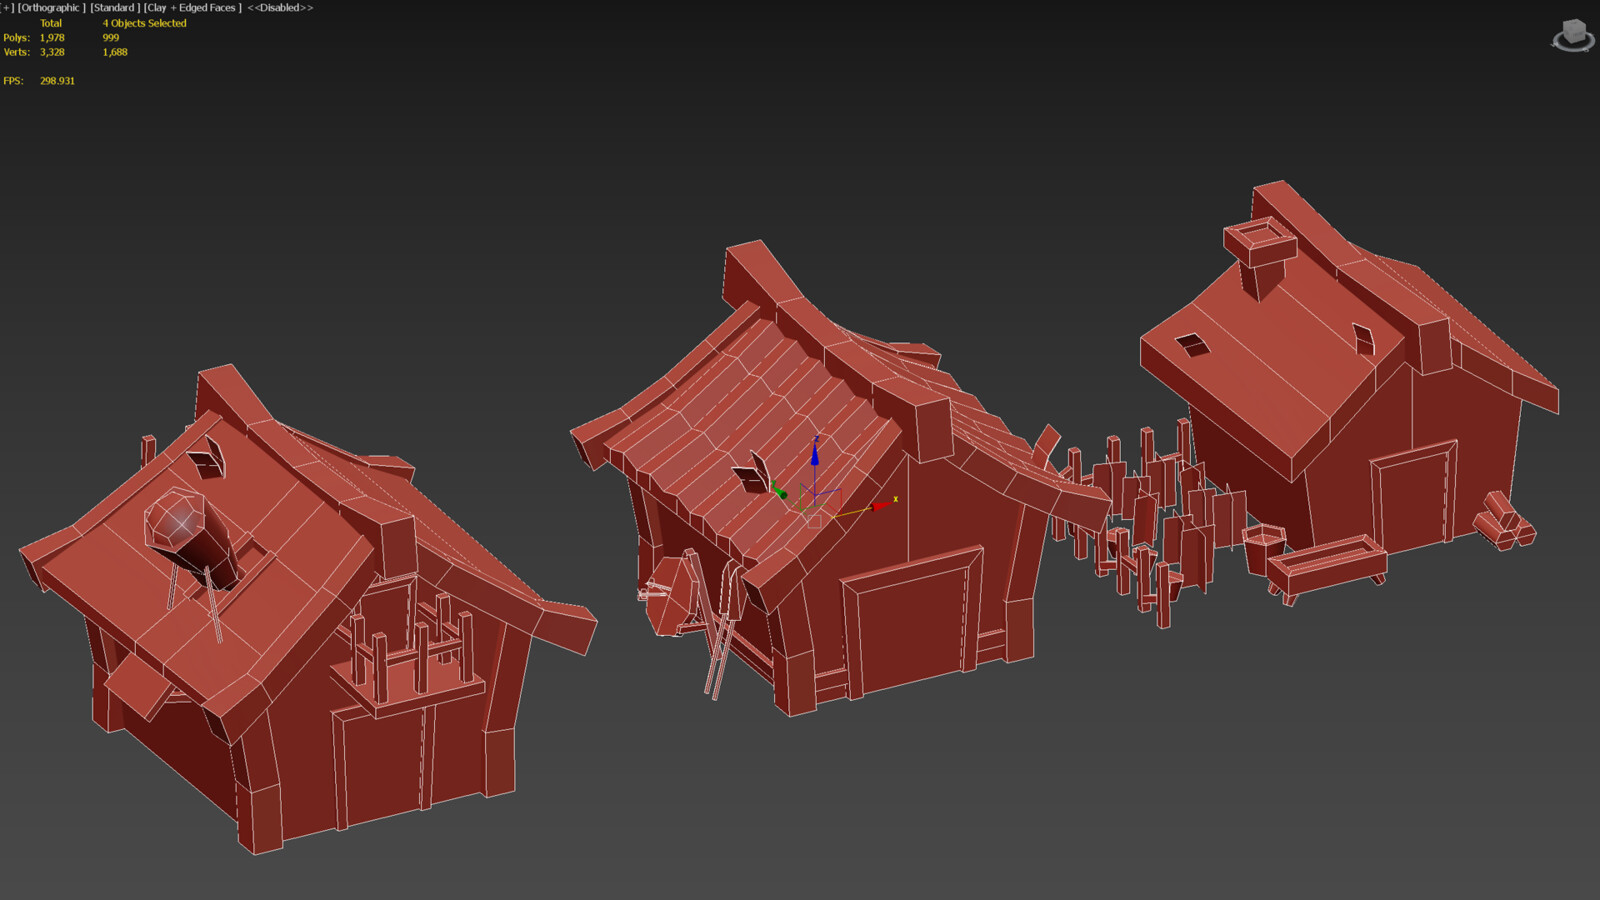 3ds Max viewport capture in clay, note the under 1k polycount.